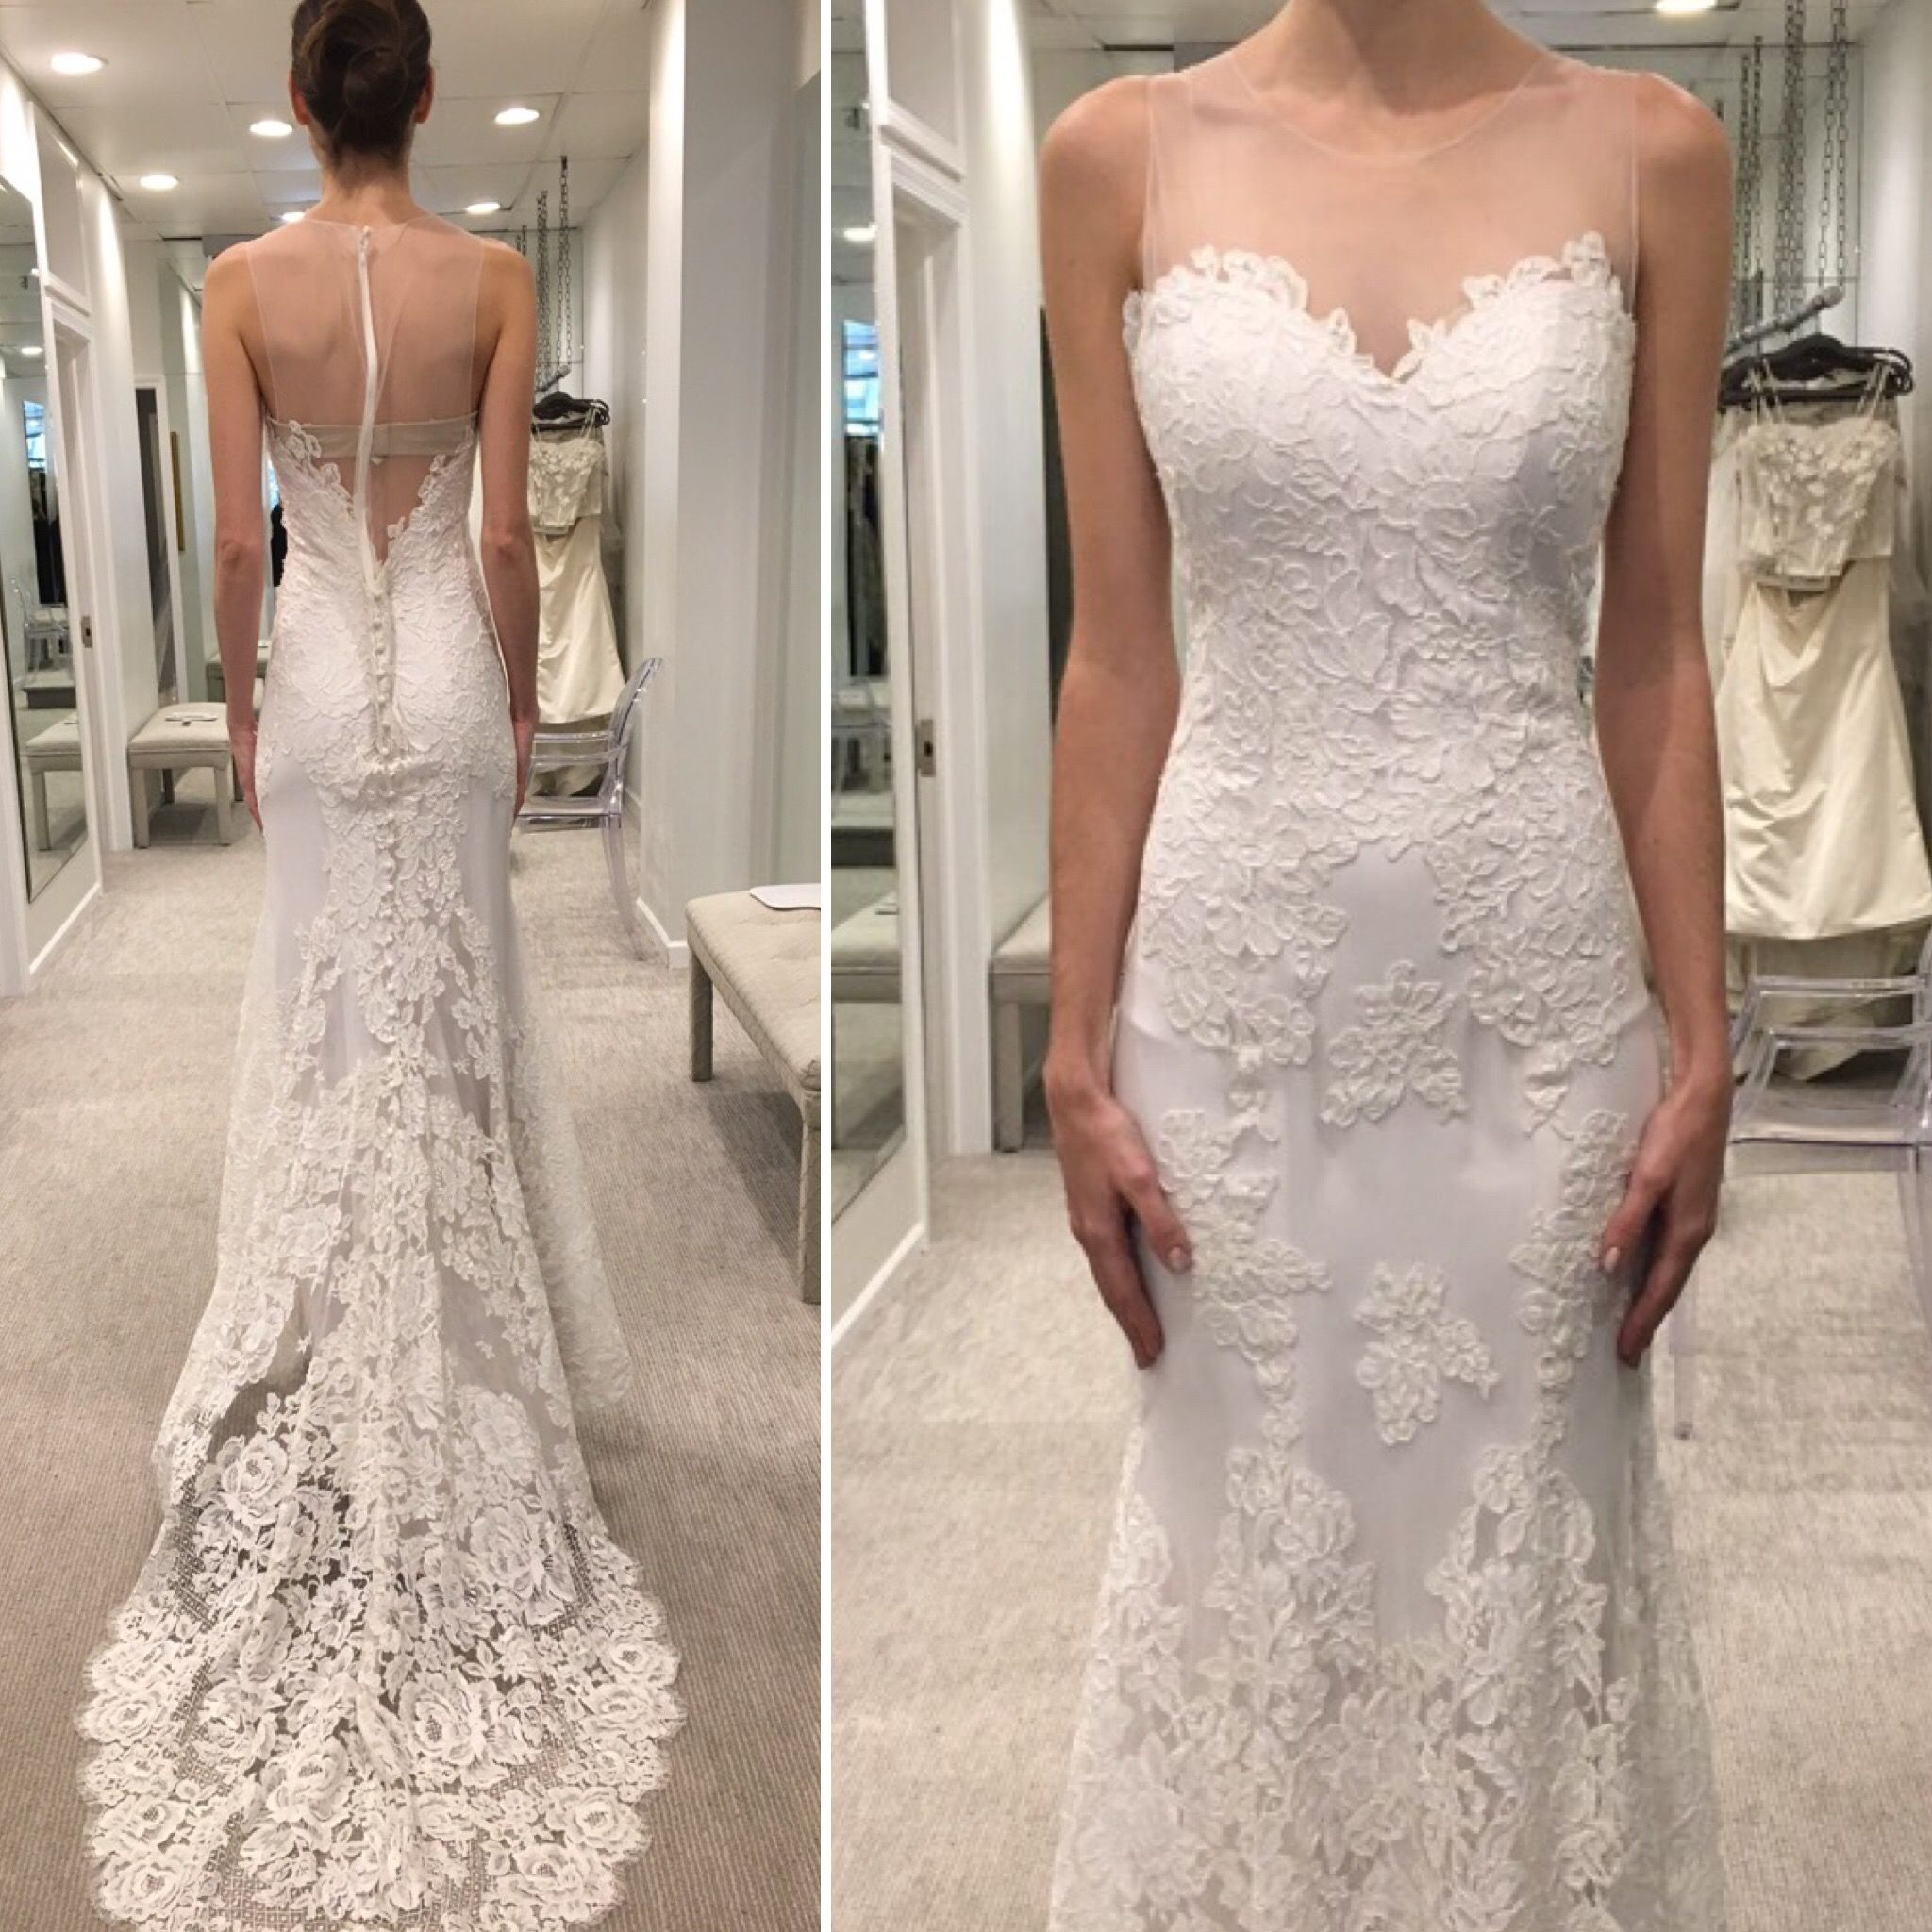 Anna Maier Lydia or Lola | Wedding Dress Shopping in Chicago ...